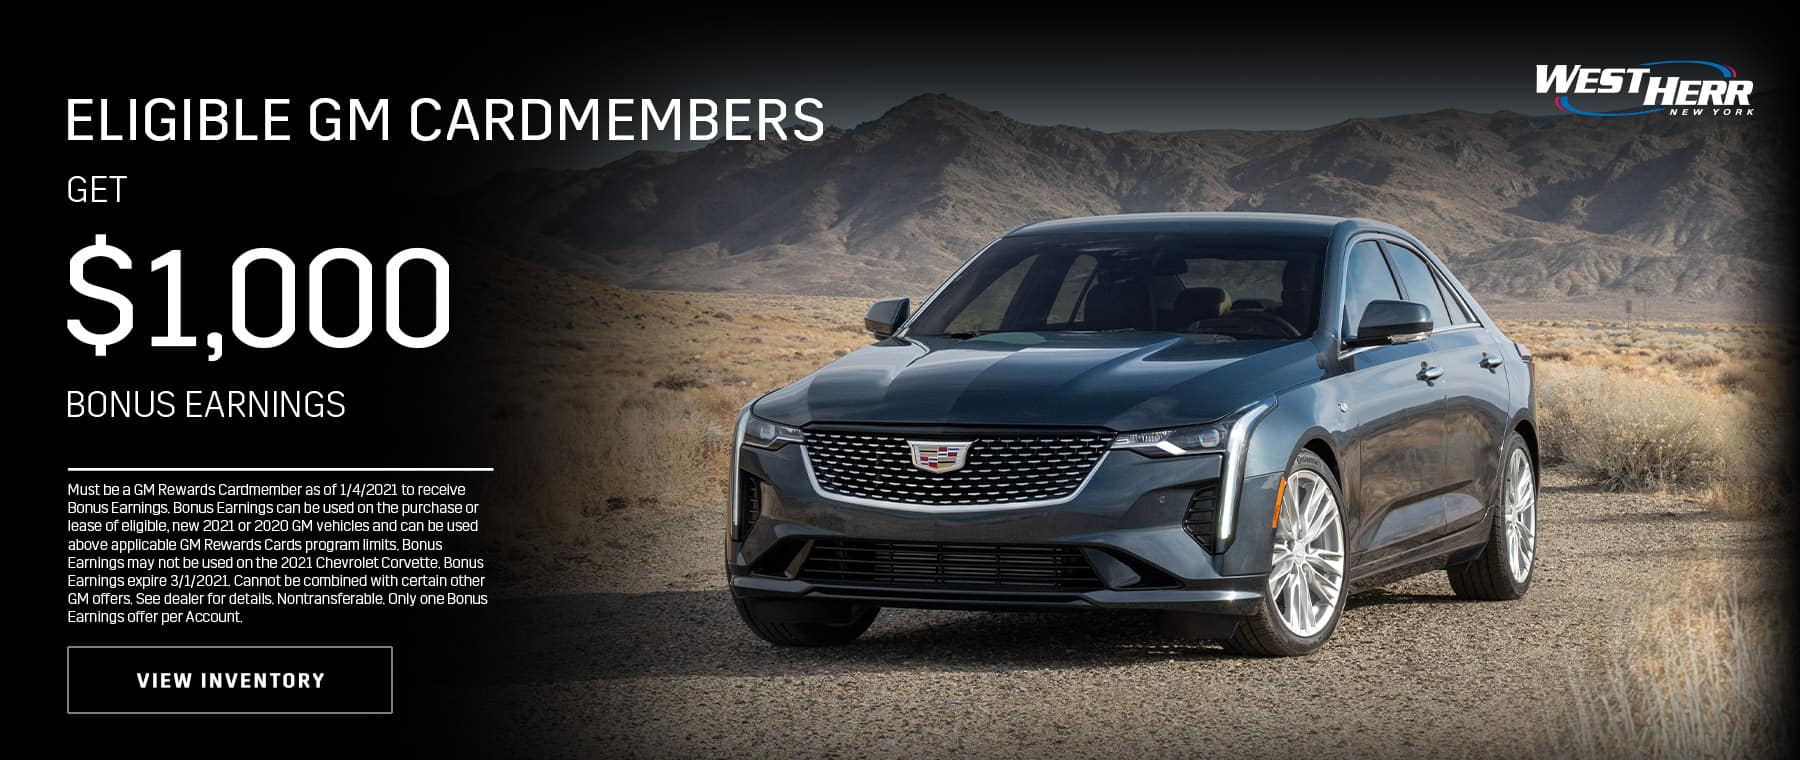 Eligible GM Cardmembers get $1,000 Bonus Earnings To use towards the purchase or lease of a new GM Vehicle.